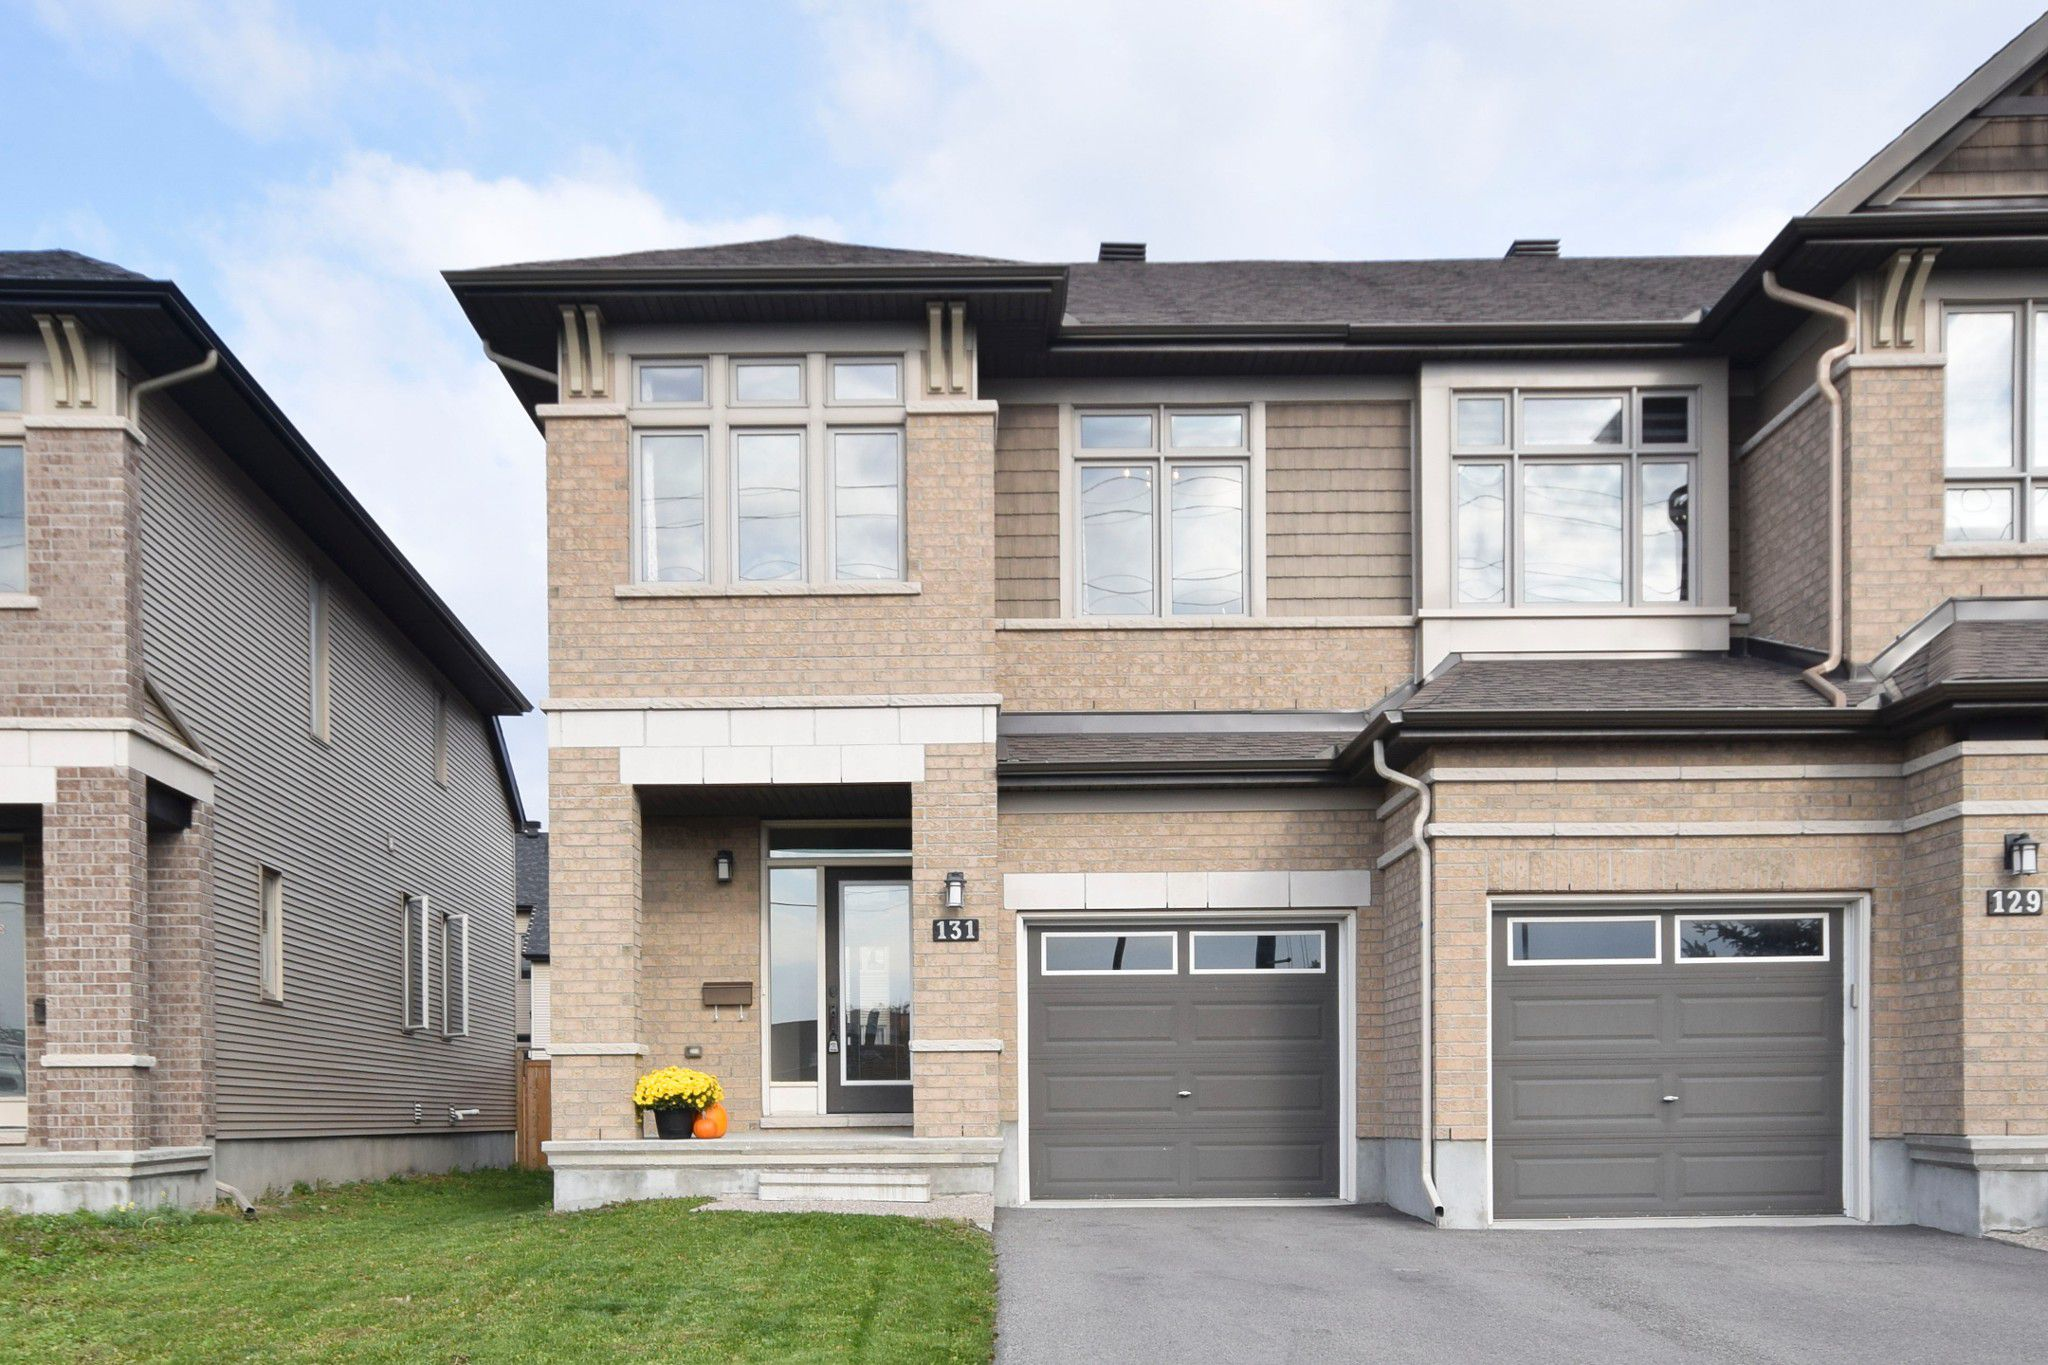 Main Photo: 131 Popplewell Crescent in Ottawa: Cedargrove / Fraserdale House for sale (Barrhaven)  : MLS®# 1130335